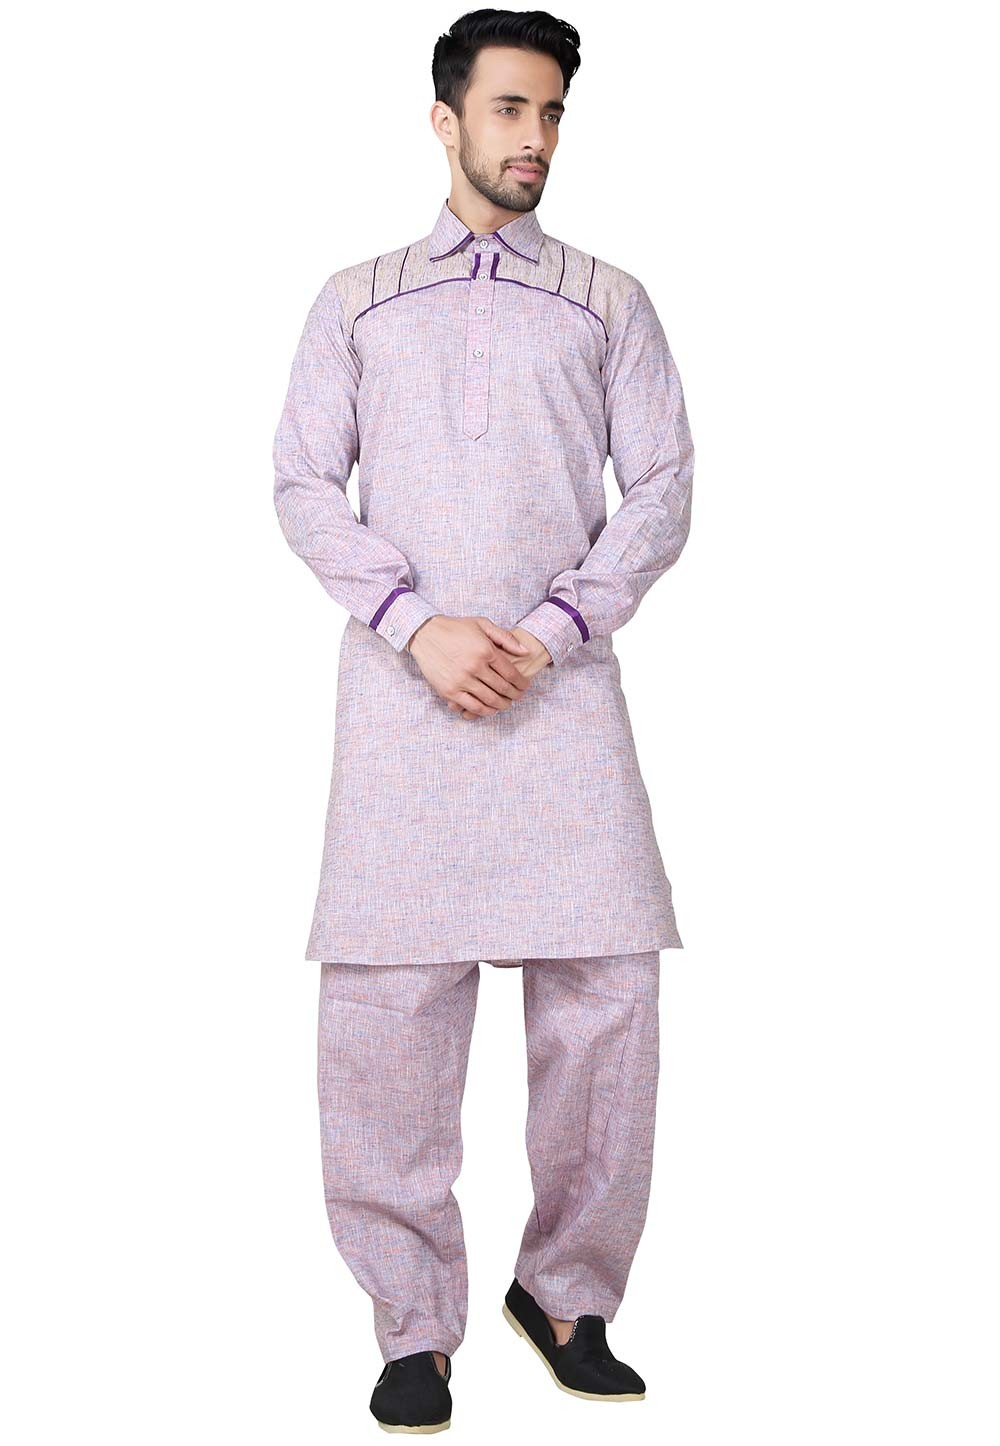 Exquisite Purple Color Cotton Pathani Kurta Pajama Online